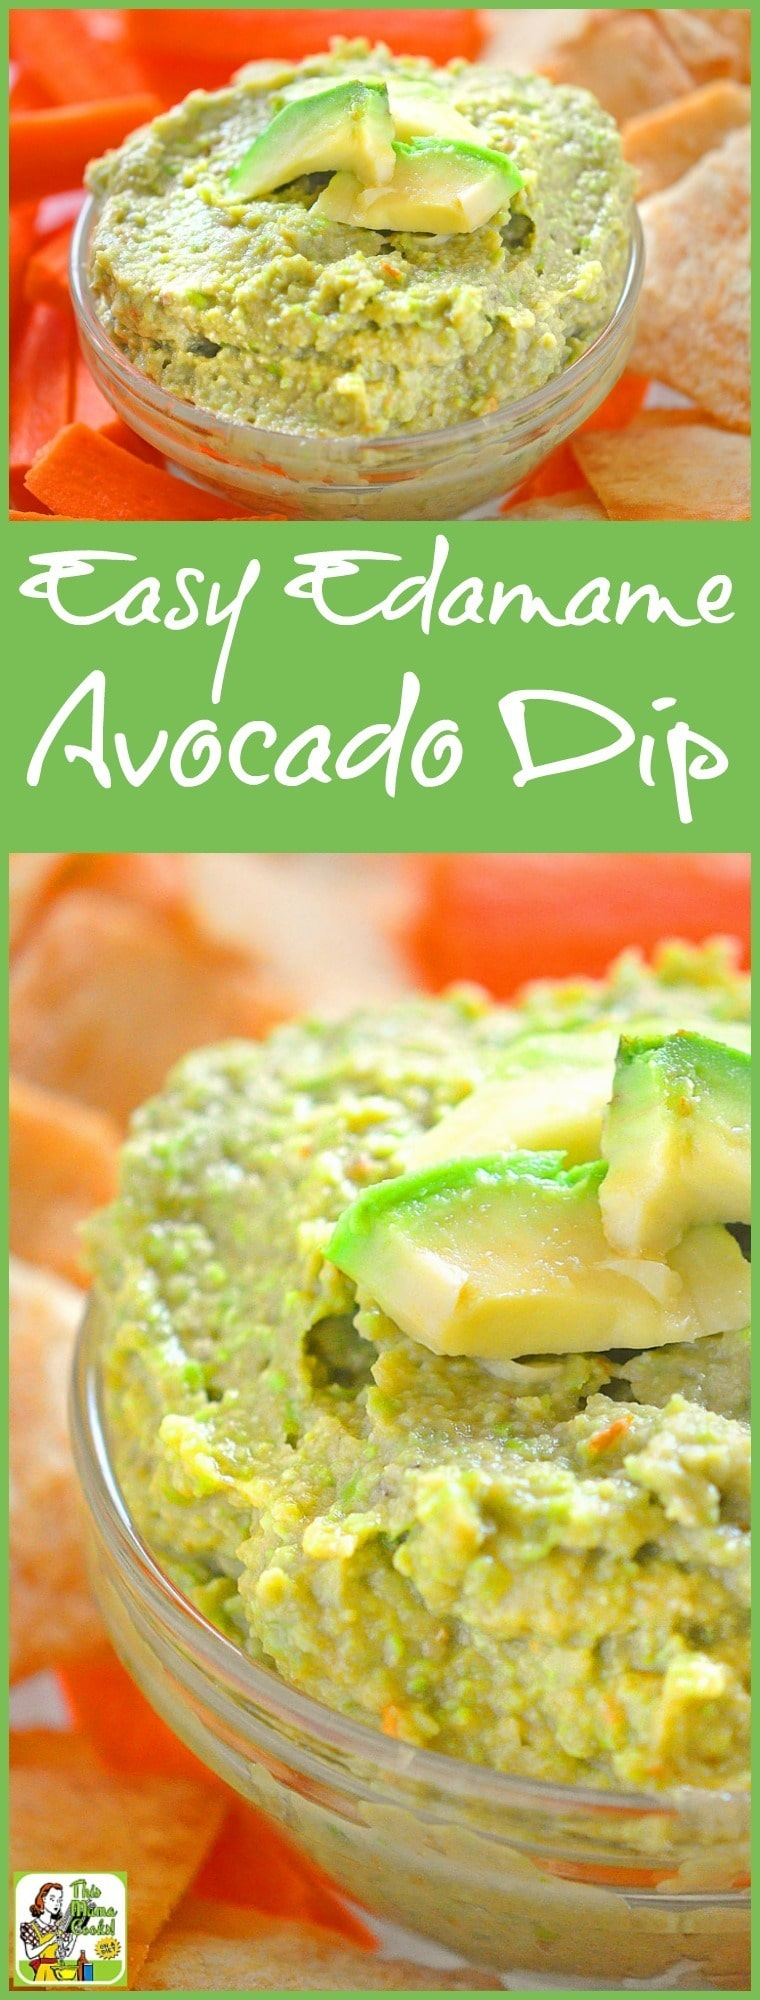 Looking for a healthy dip recipe for your party? Try this quick and Edamame Avocado Dip recipe! It\'s naturally gluten free and can be made in just a few minutes! #recipes #easy #recipeoftheday #glutenfree #easyrecipe #easyrecipes #glutenfreerecipes #partyfood #appetizers #appetizerseasy #avocado #edamame